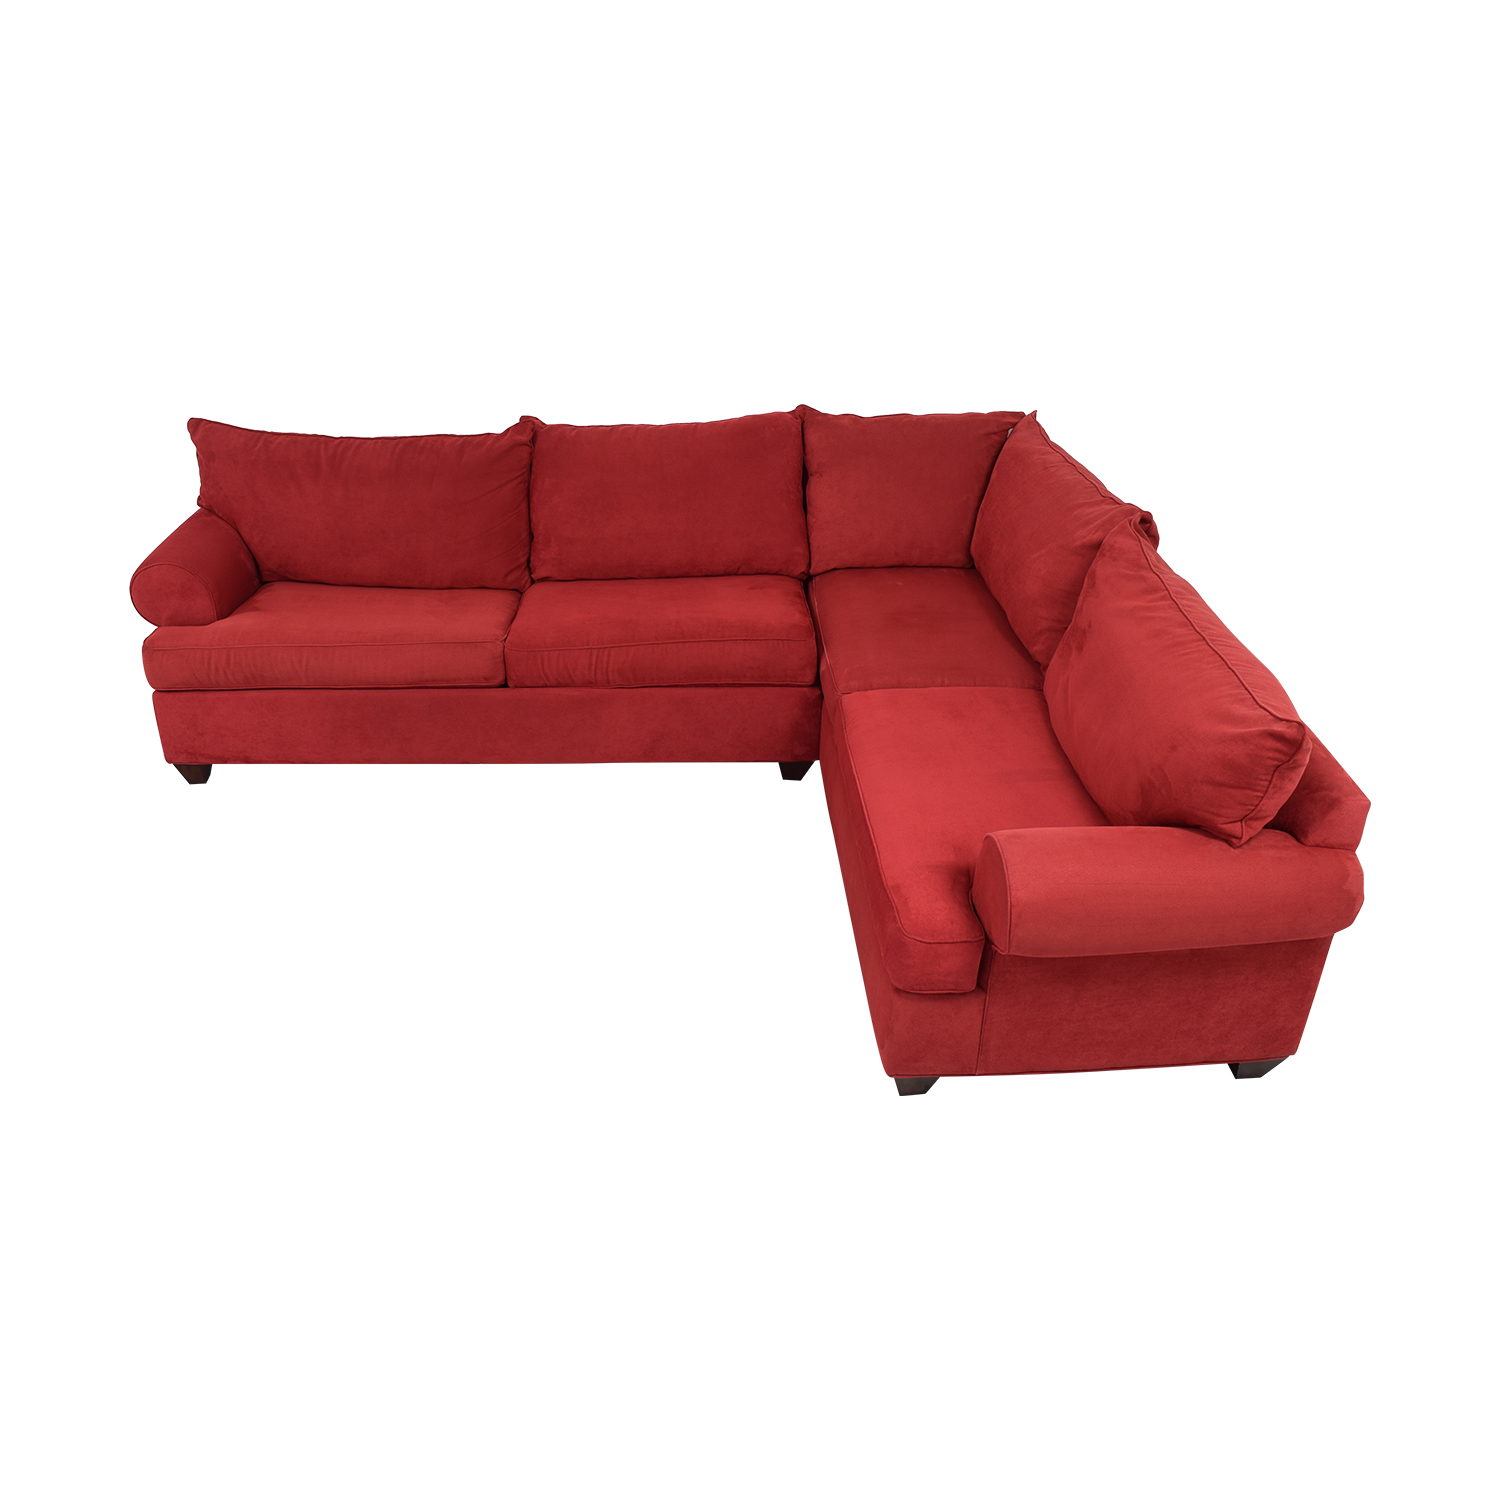 Raymour & Flanigan Raymour & Flanigan Sleeper Sectional Sofa red